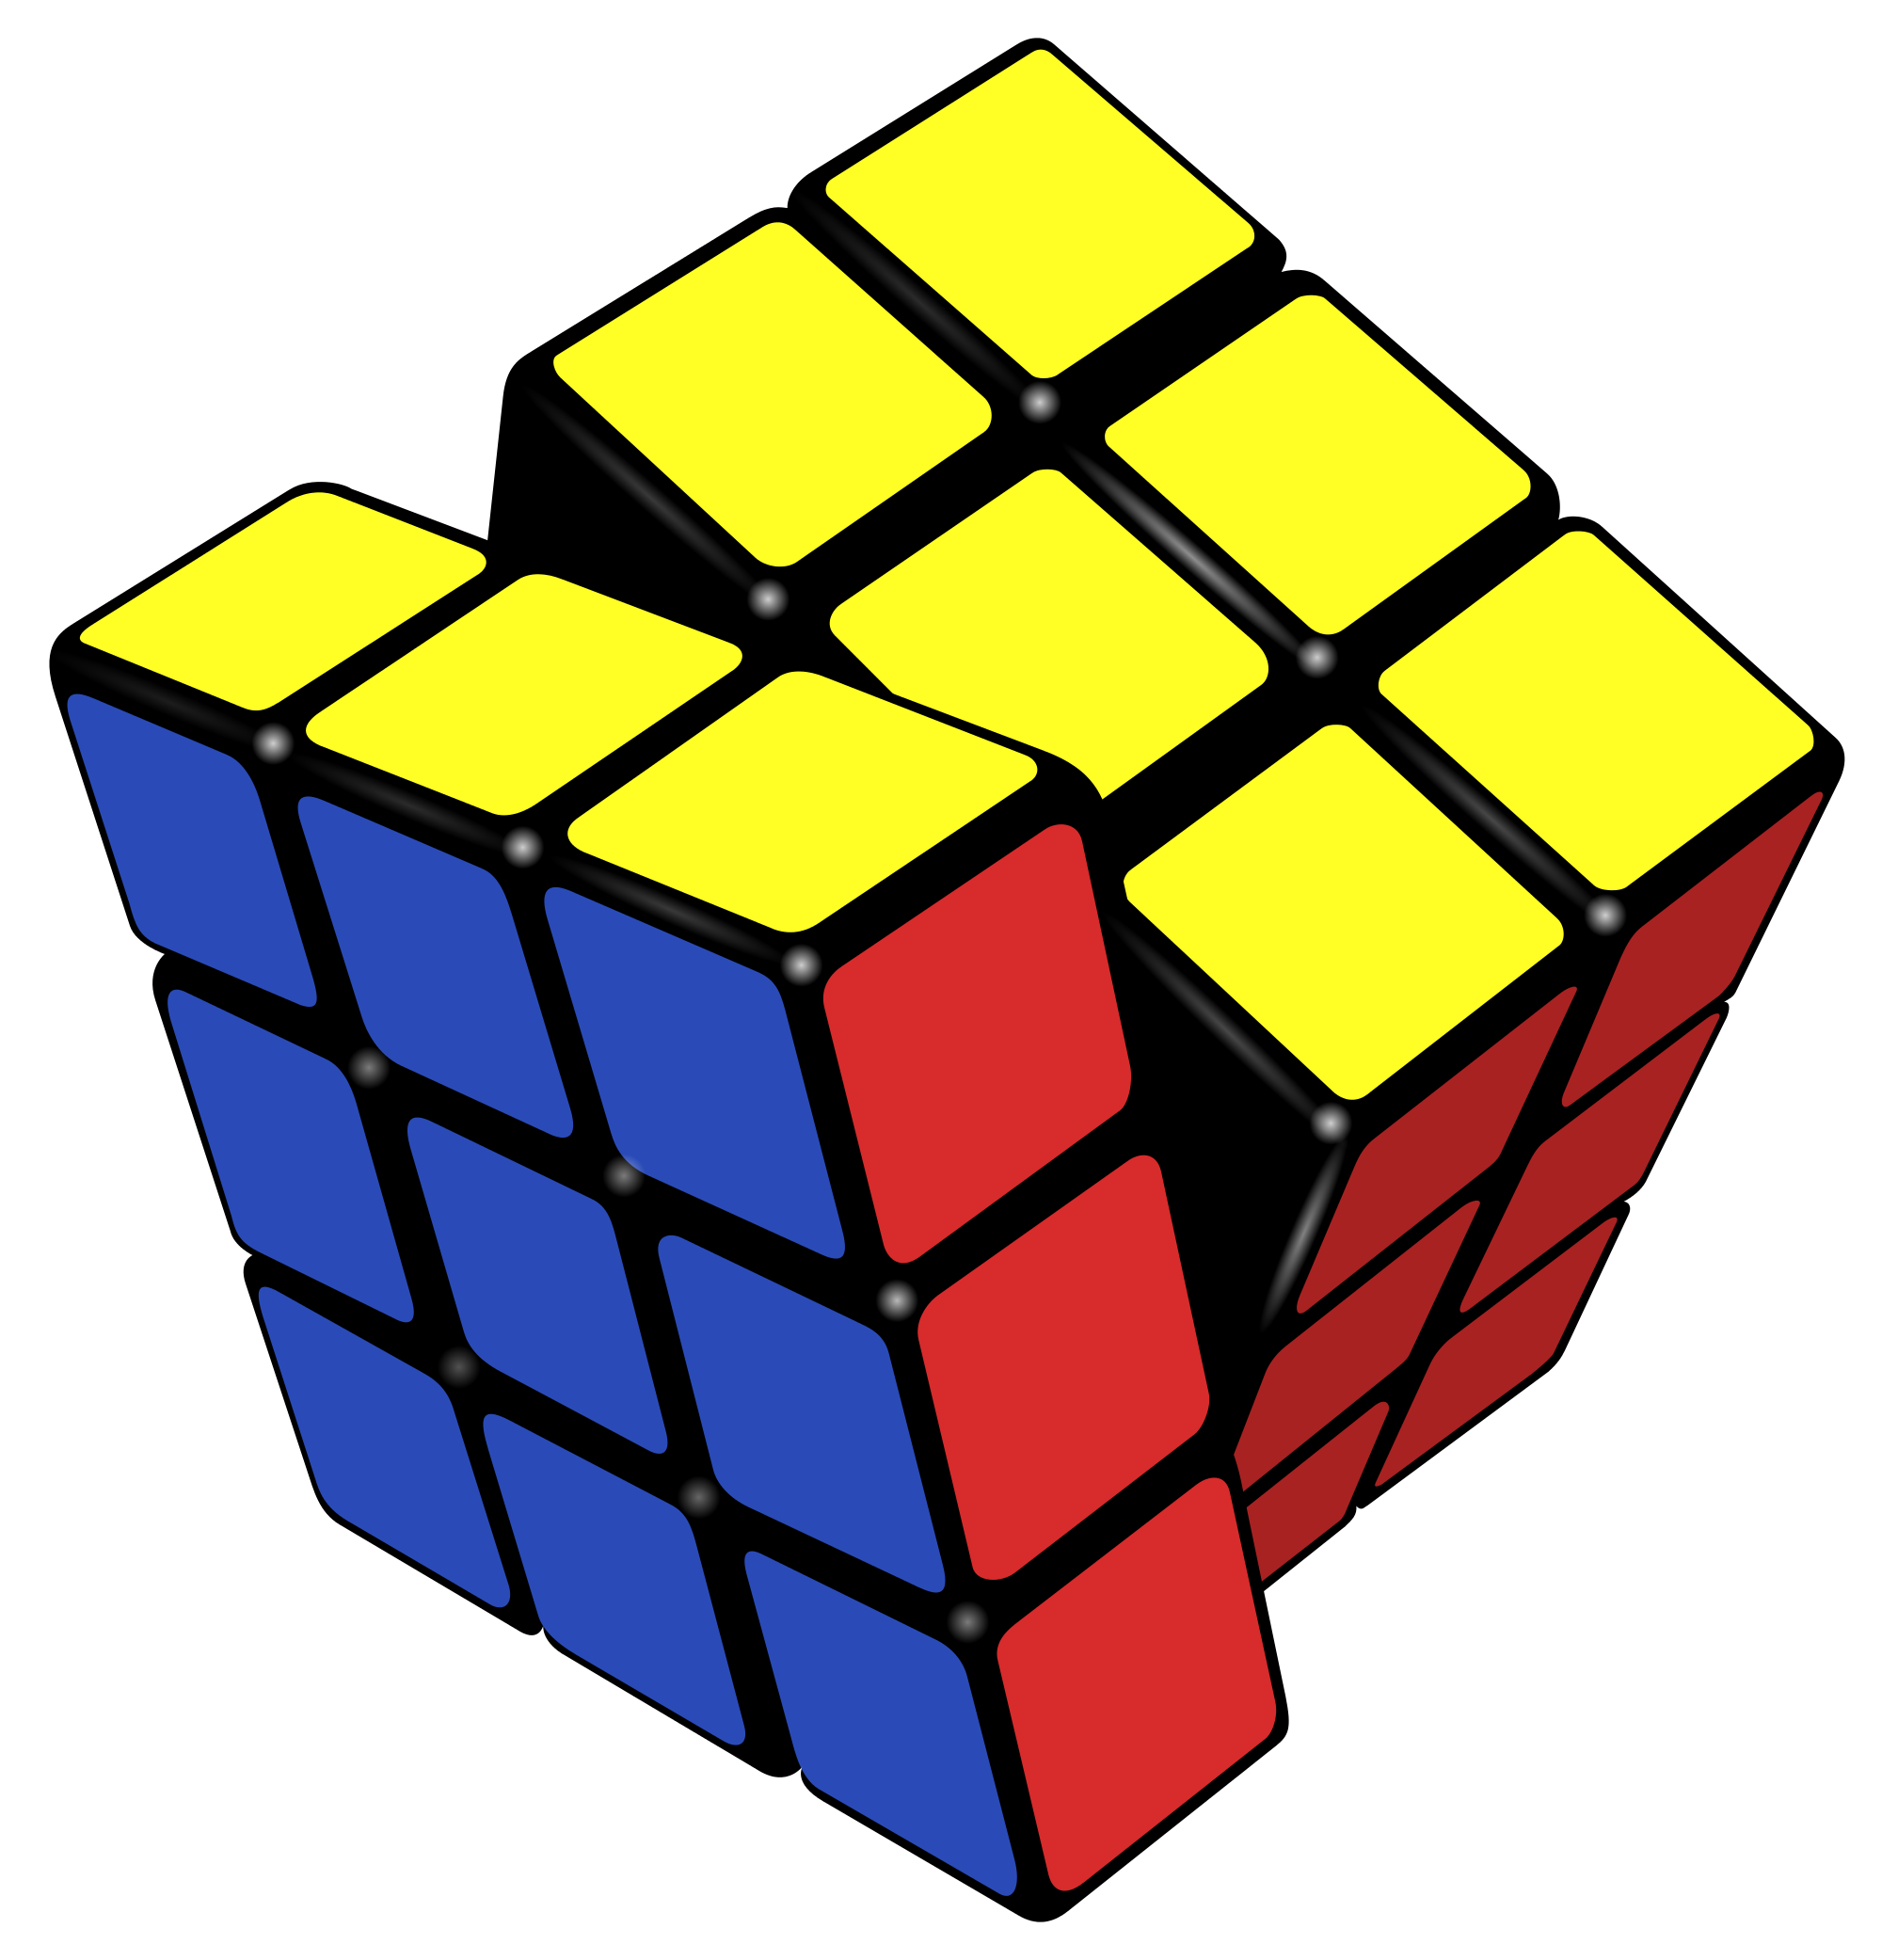 Cube clipart svg. File rubik s almost